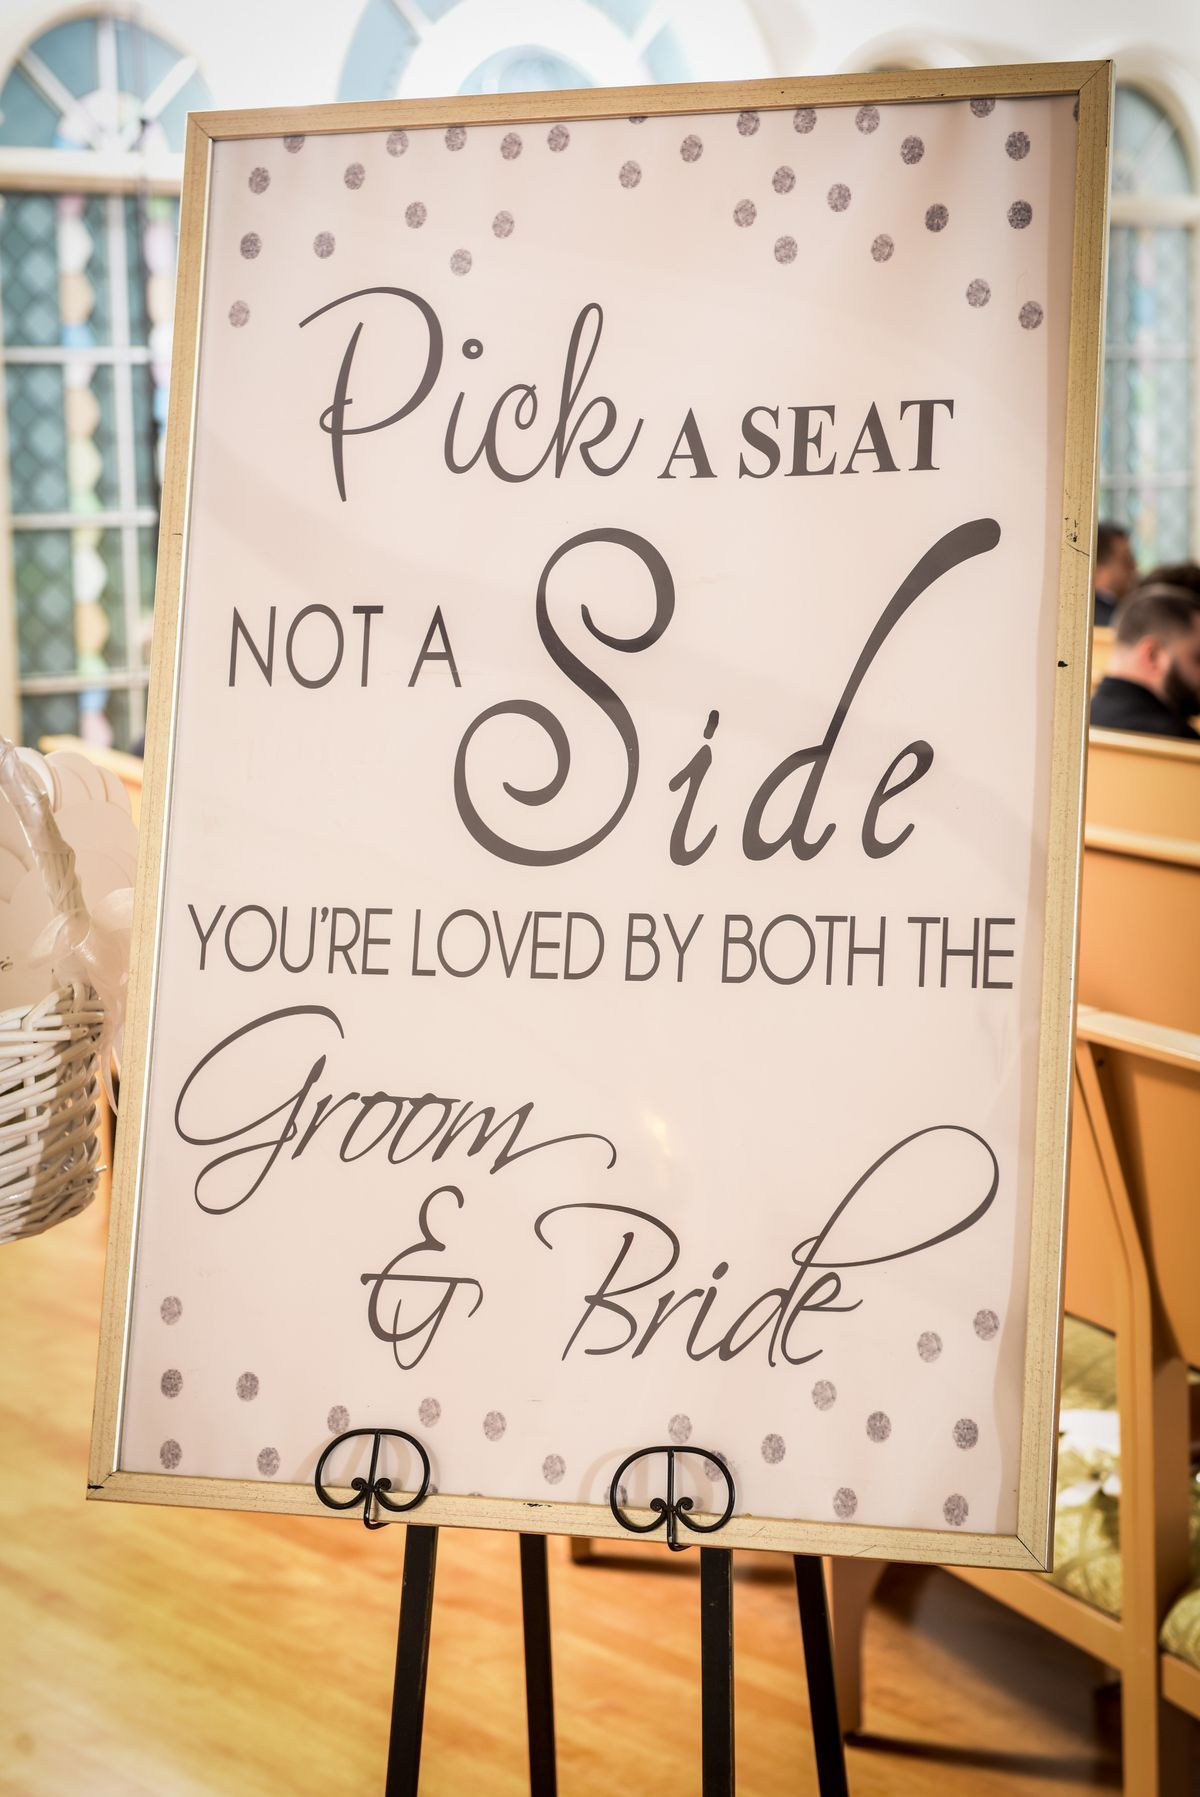 disney wedding ideas 10 best photos | wedding ideas ...